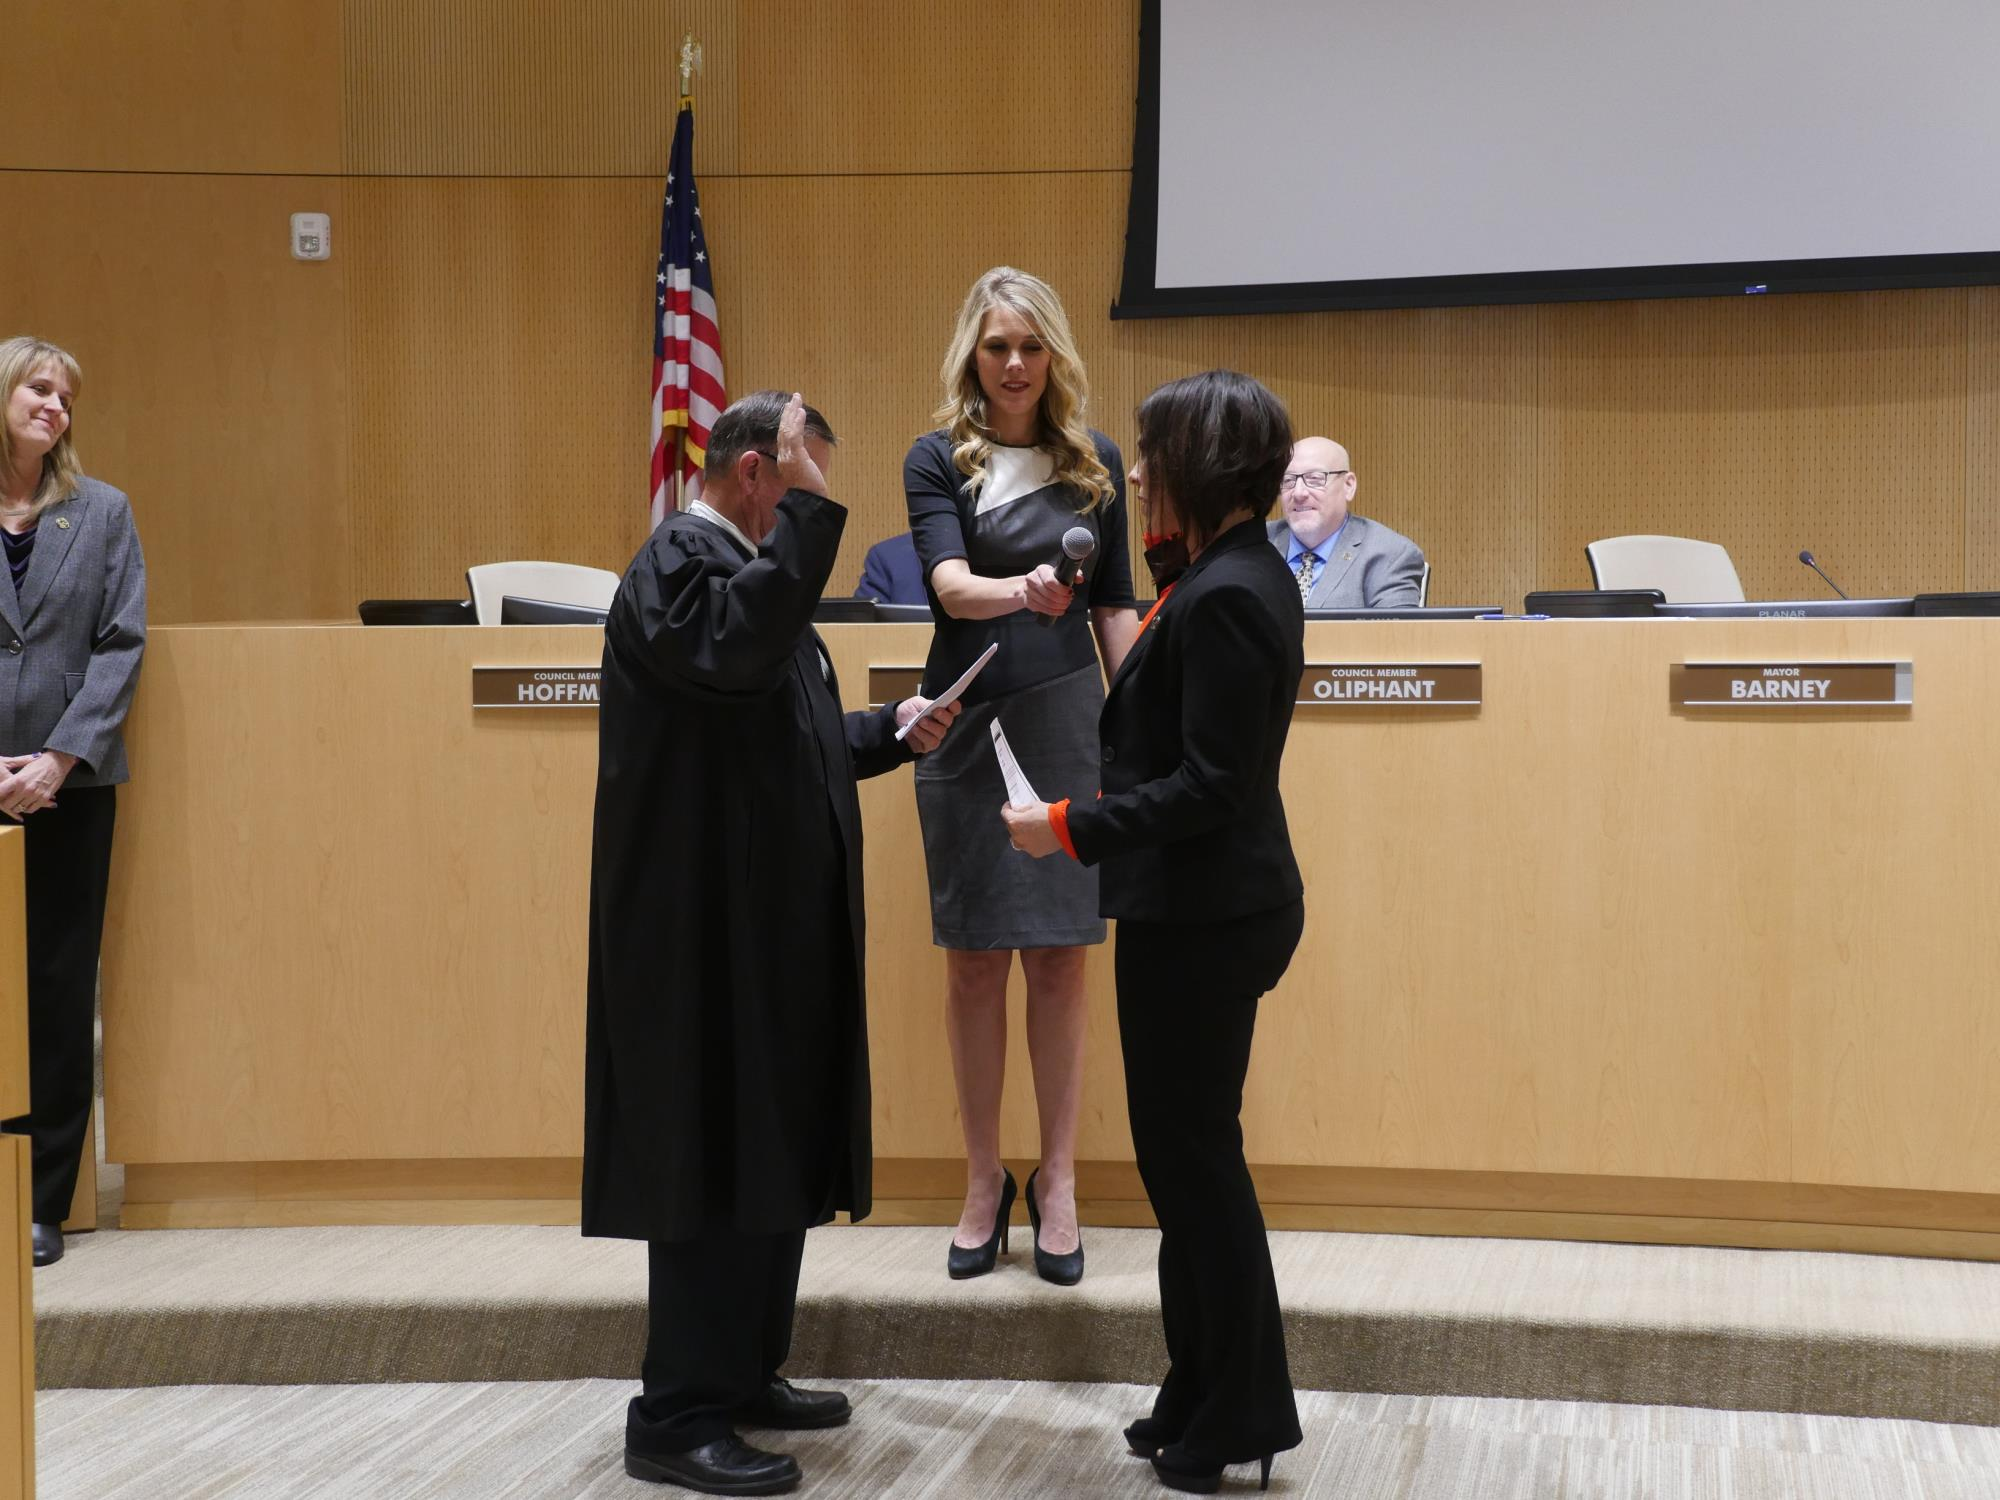 Council Member Turley being sworn into office at the January 16 Town Council Meeting - 1